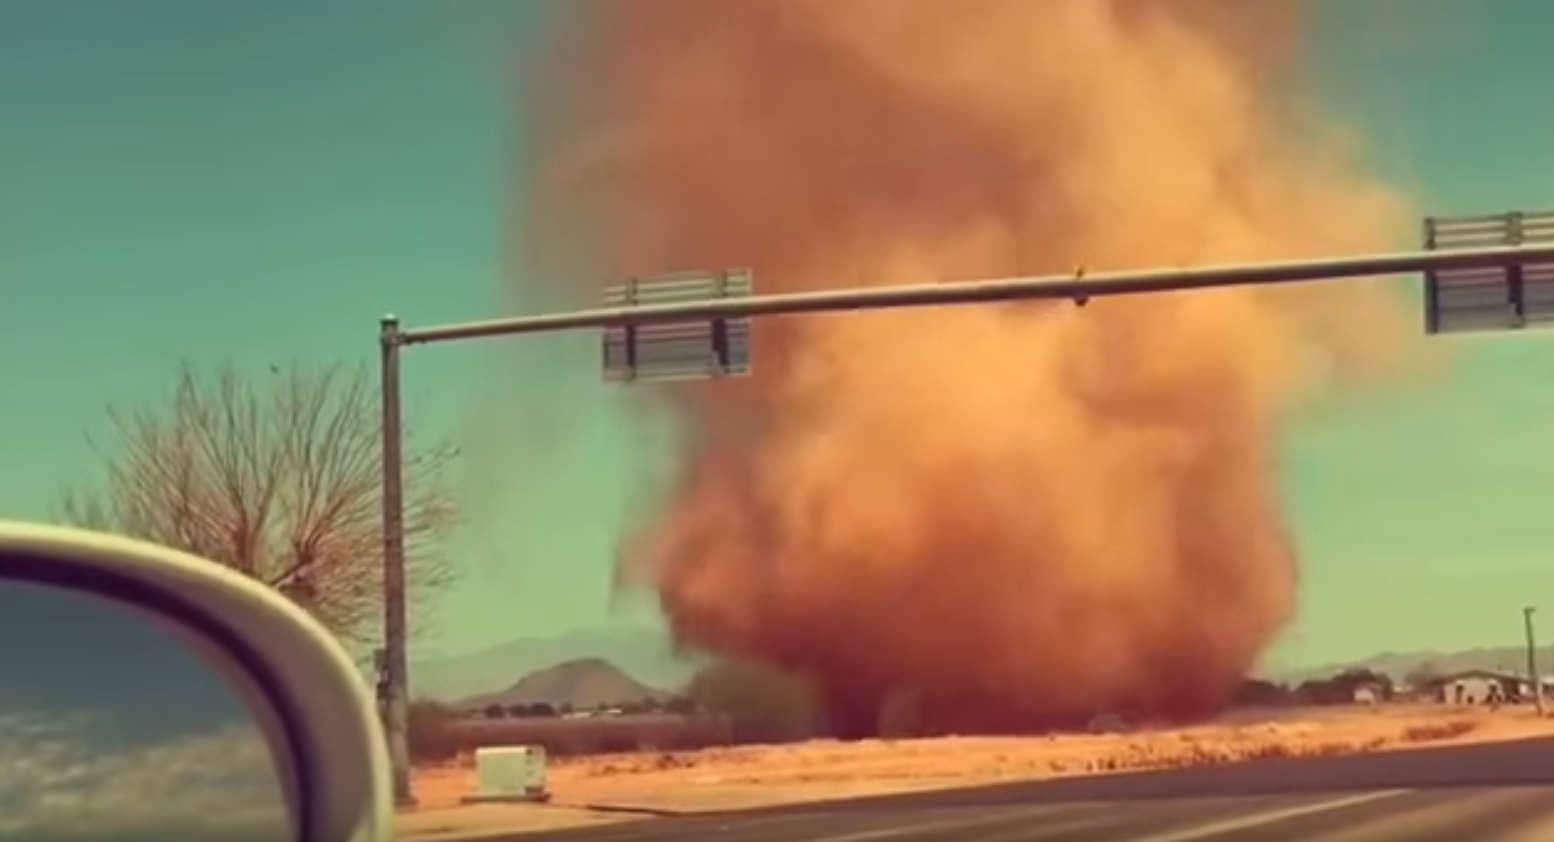 Massive Dust Devil spotted in Arizona